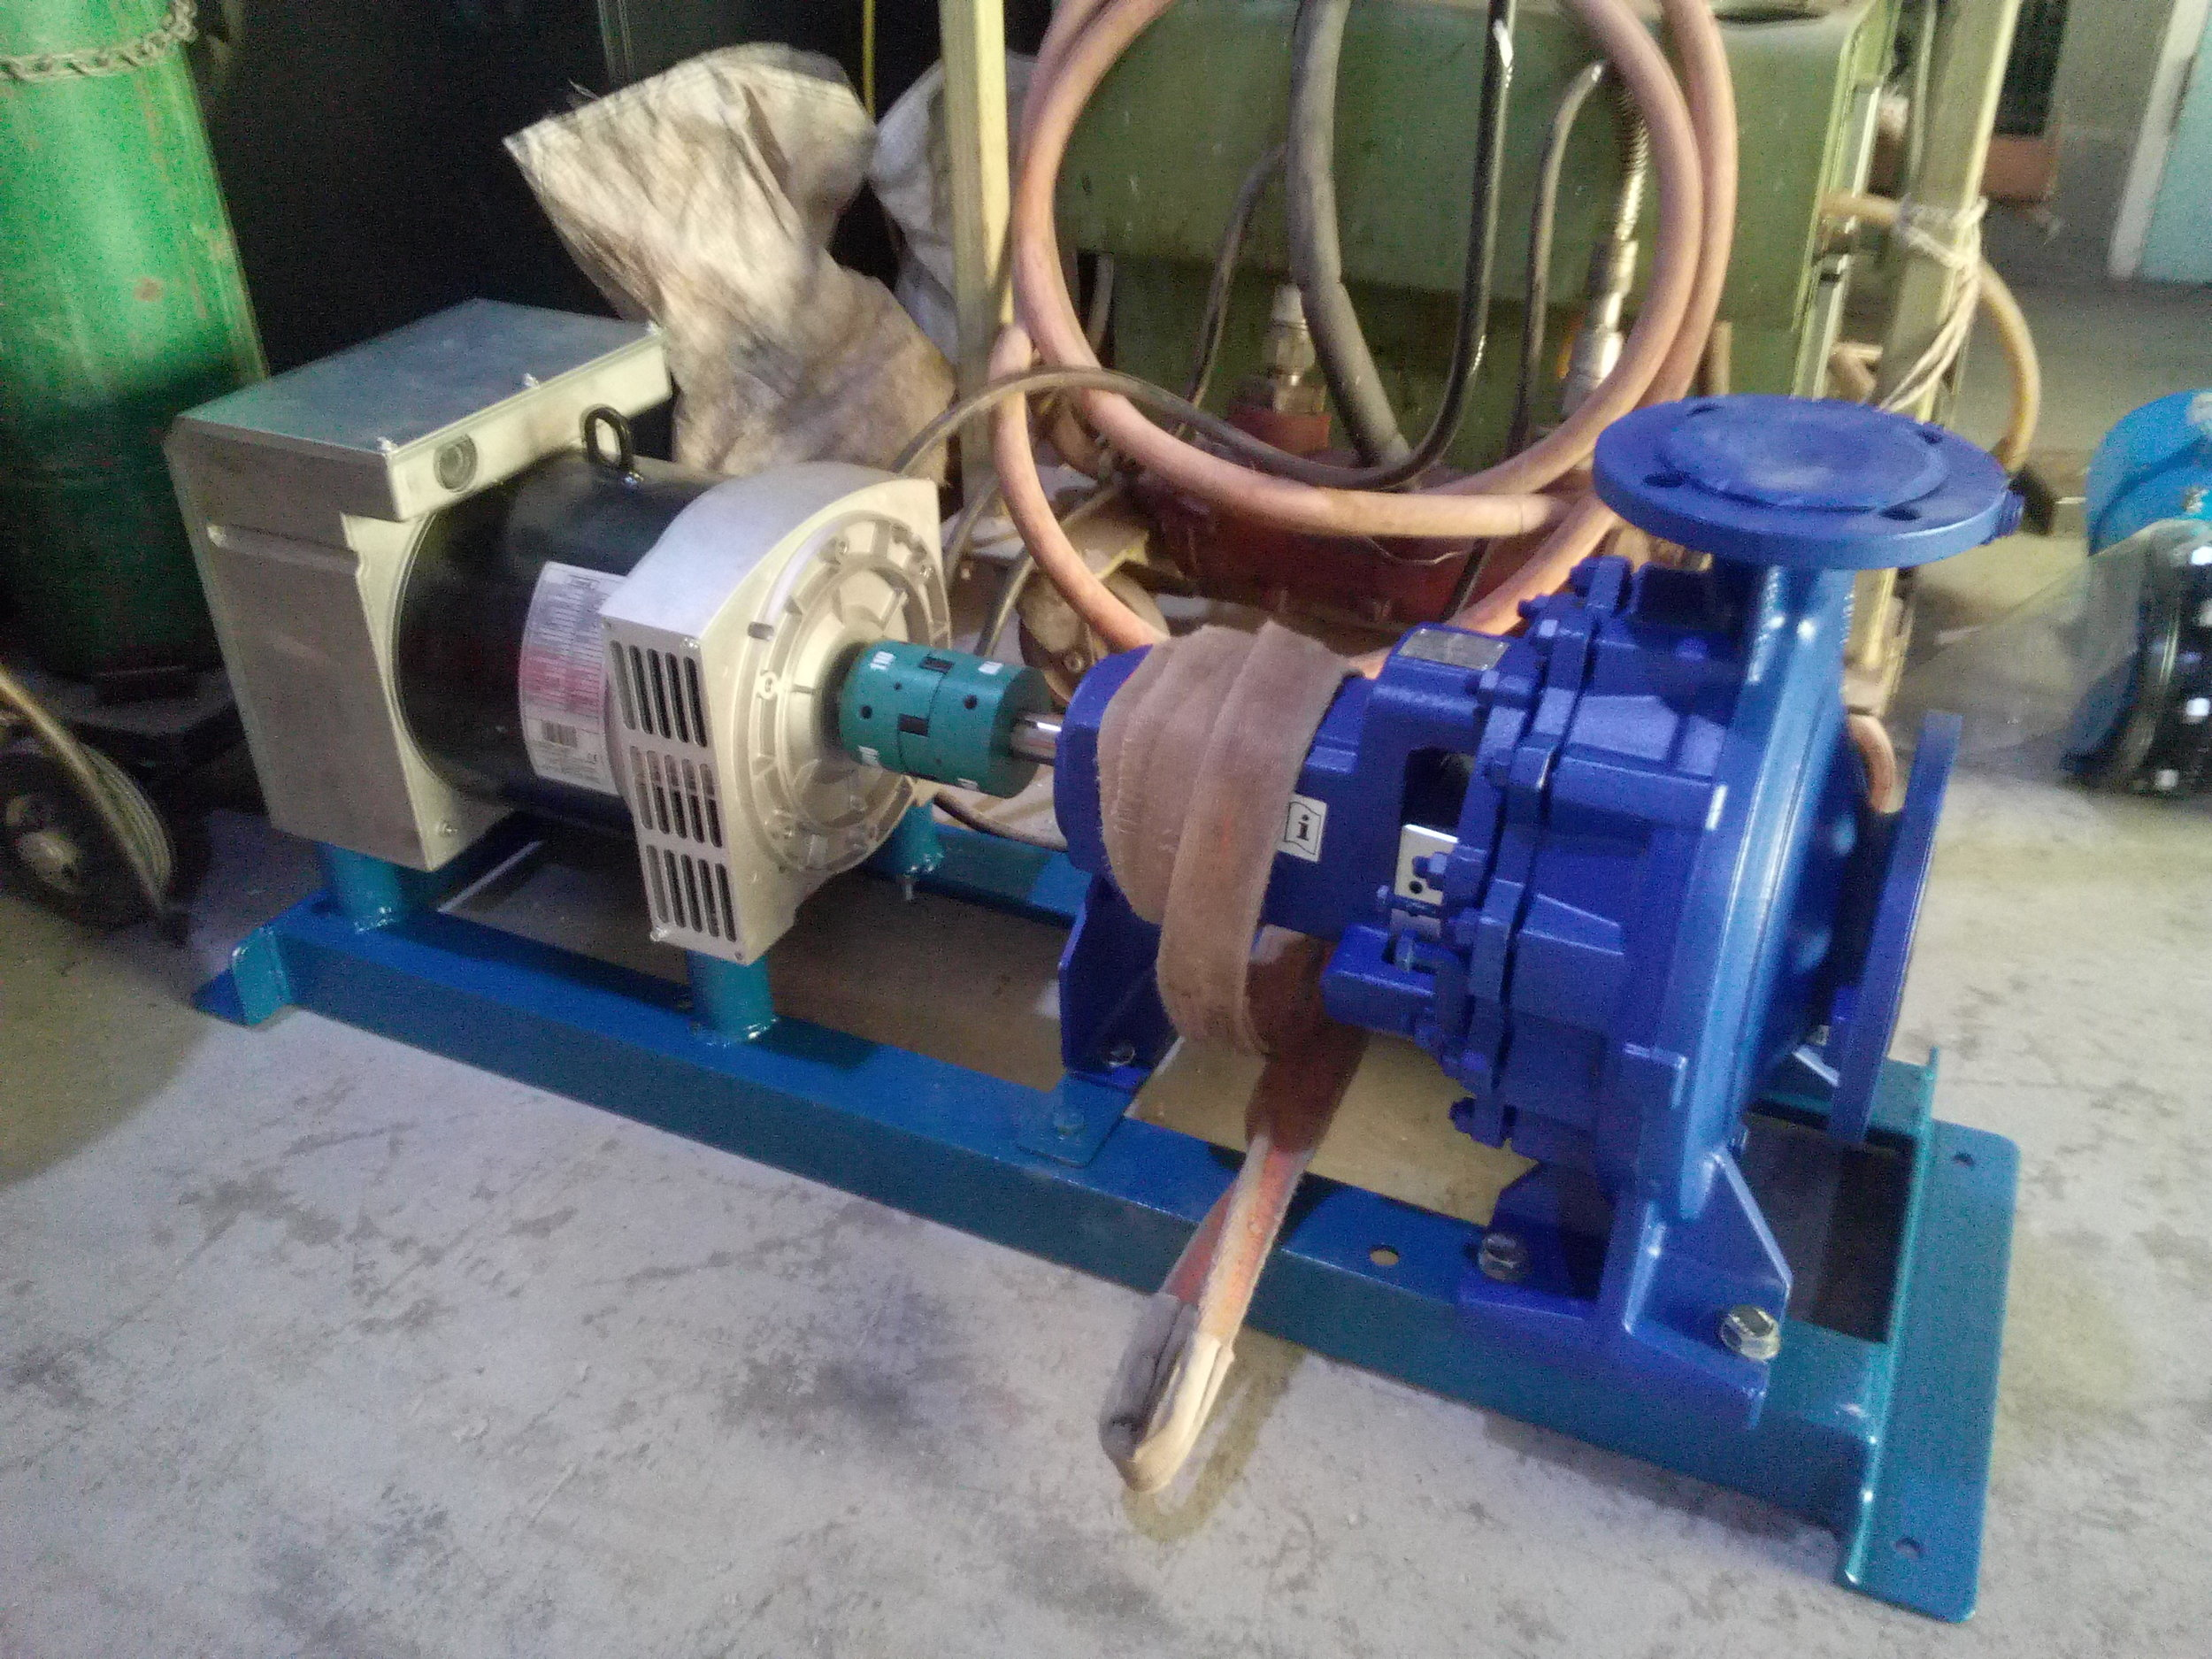 Picture of the assembled turbine ready for transport.